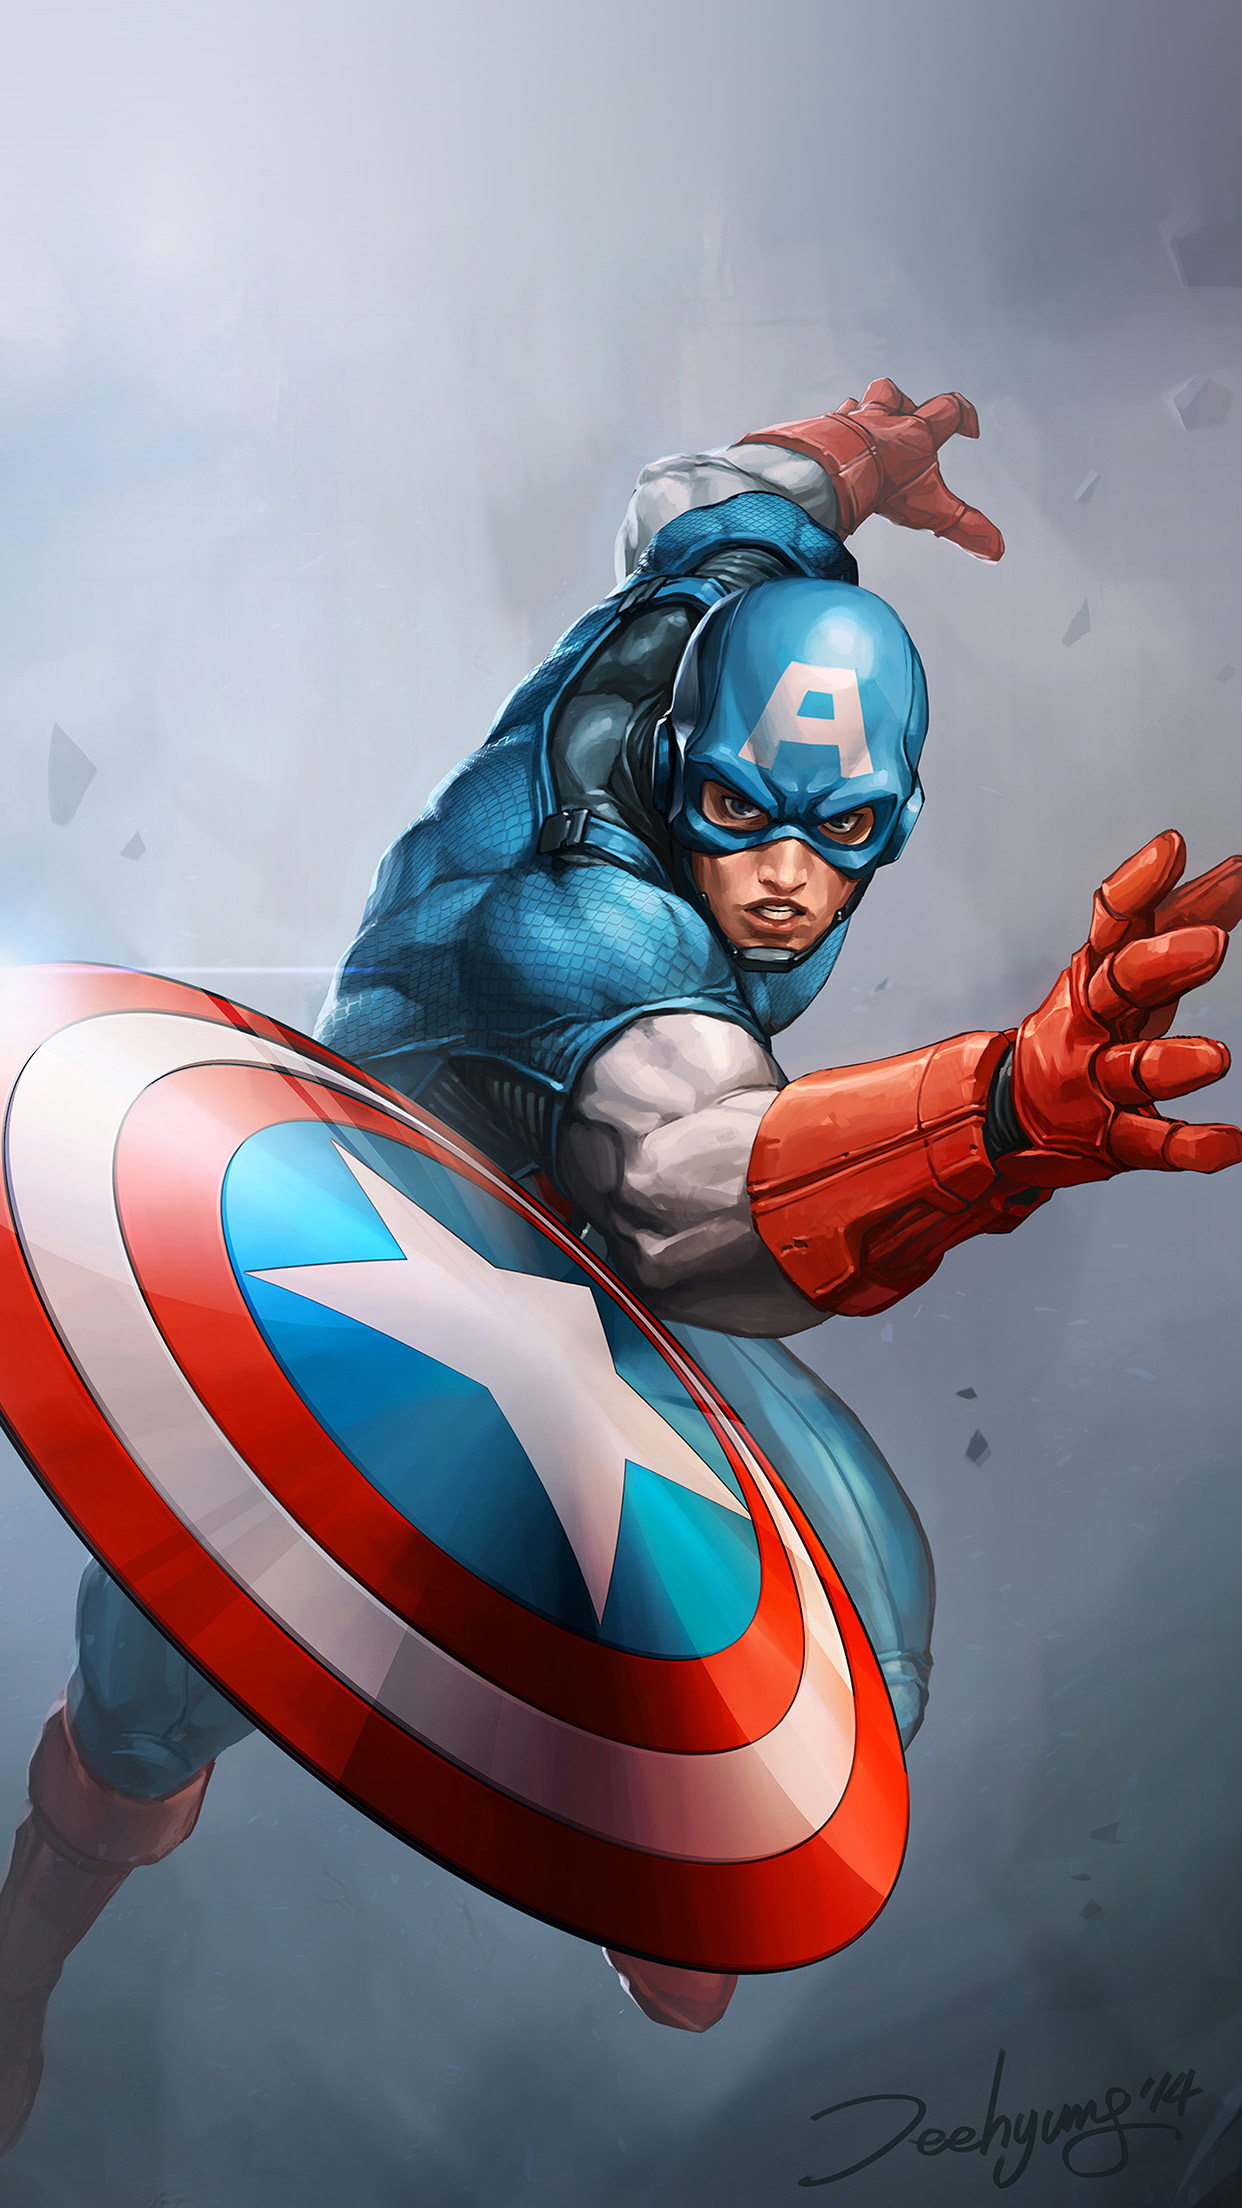 Iphone wallpaper au72 hero captain america - Classic art wallpaper iphone 5 ...